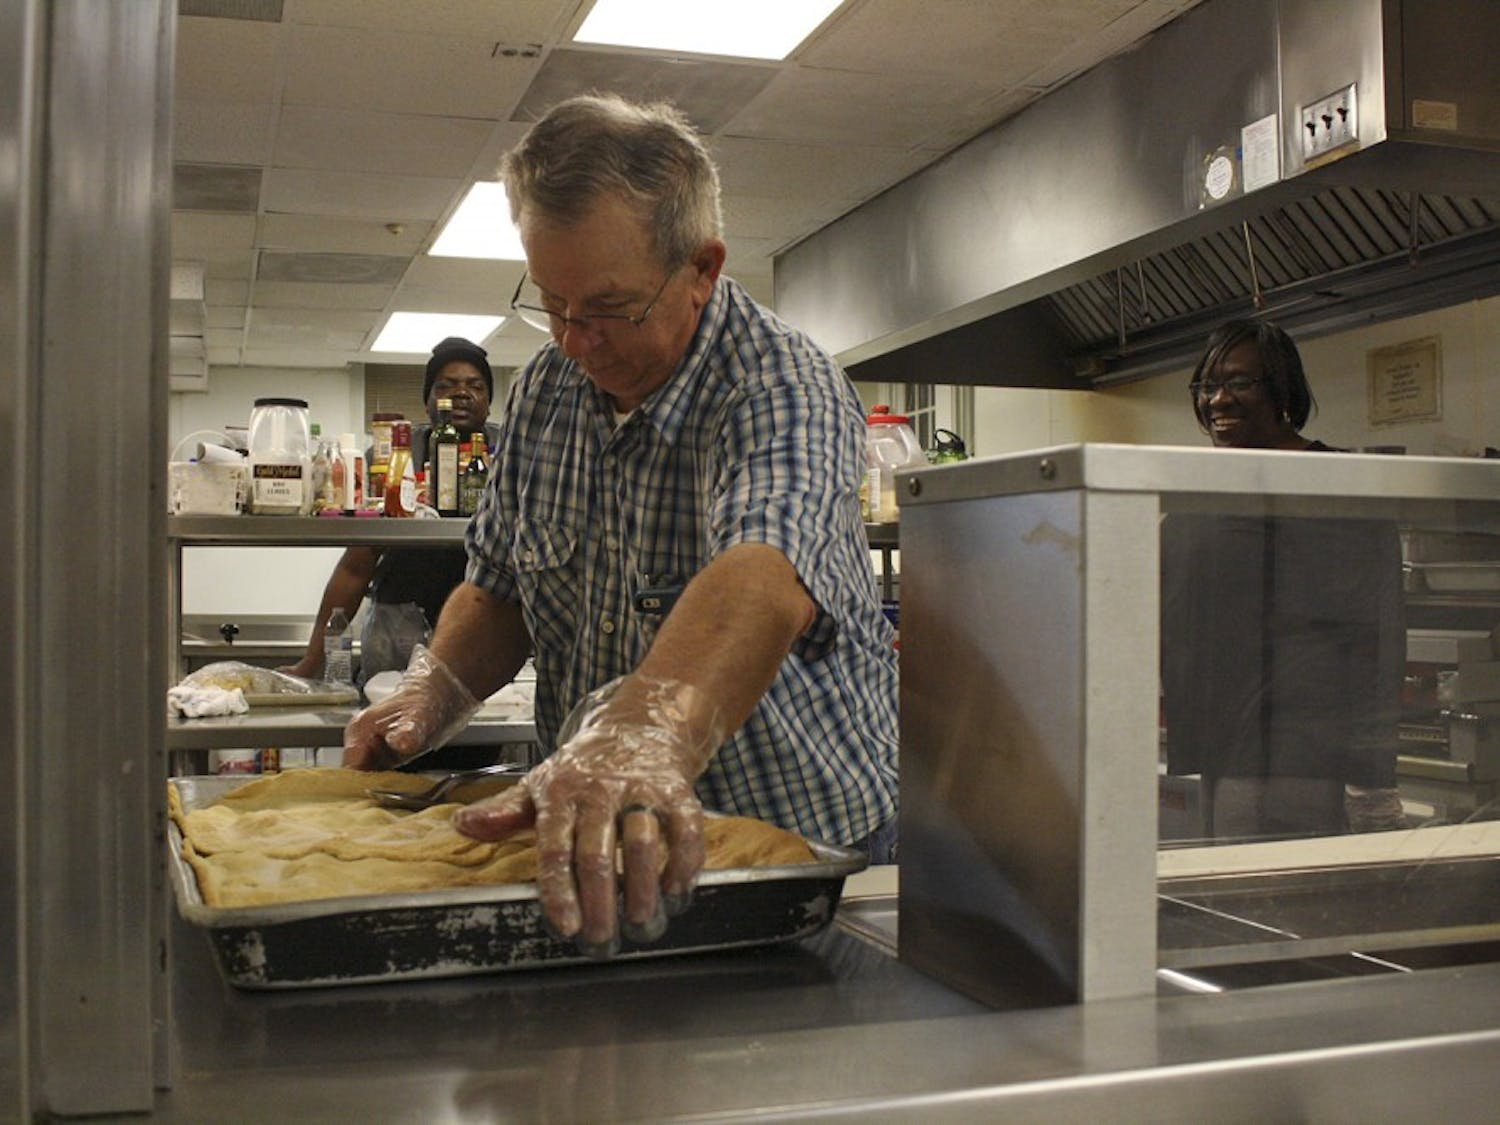 """Alvin Alston sets out some peach cobbler before """"Meet Me in the Kitchen"""", an event hosted by the IFC that works to feed those who need help in the Chapel Hill community. He has worked in the community kitchen for the past 12 years."""